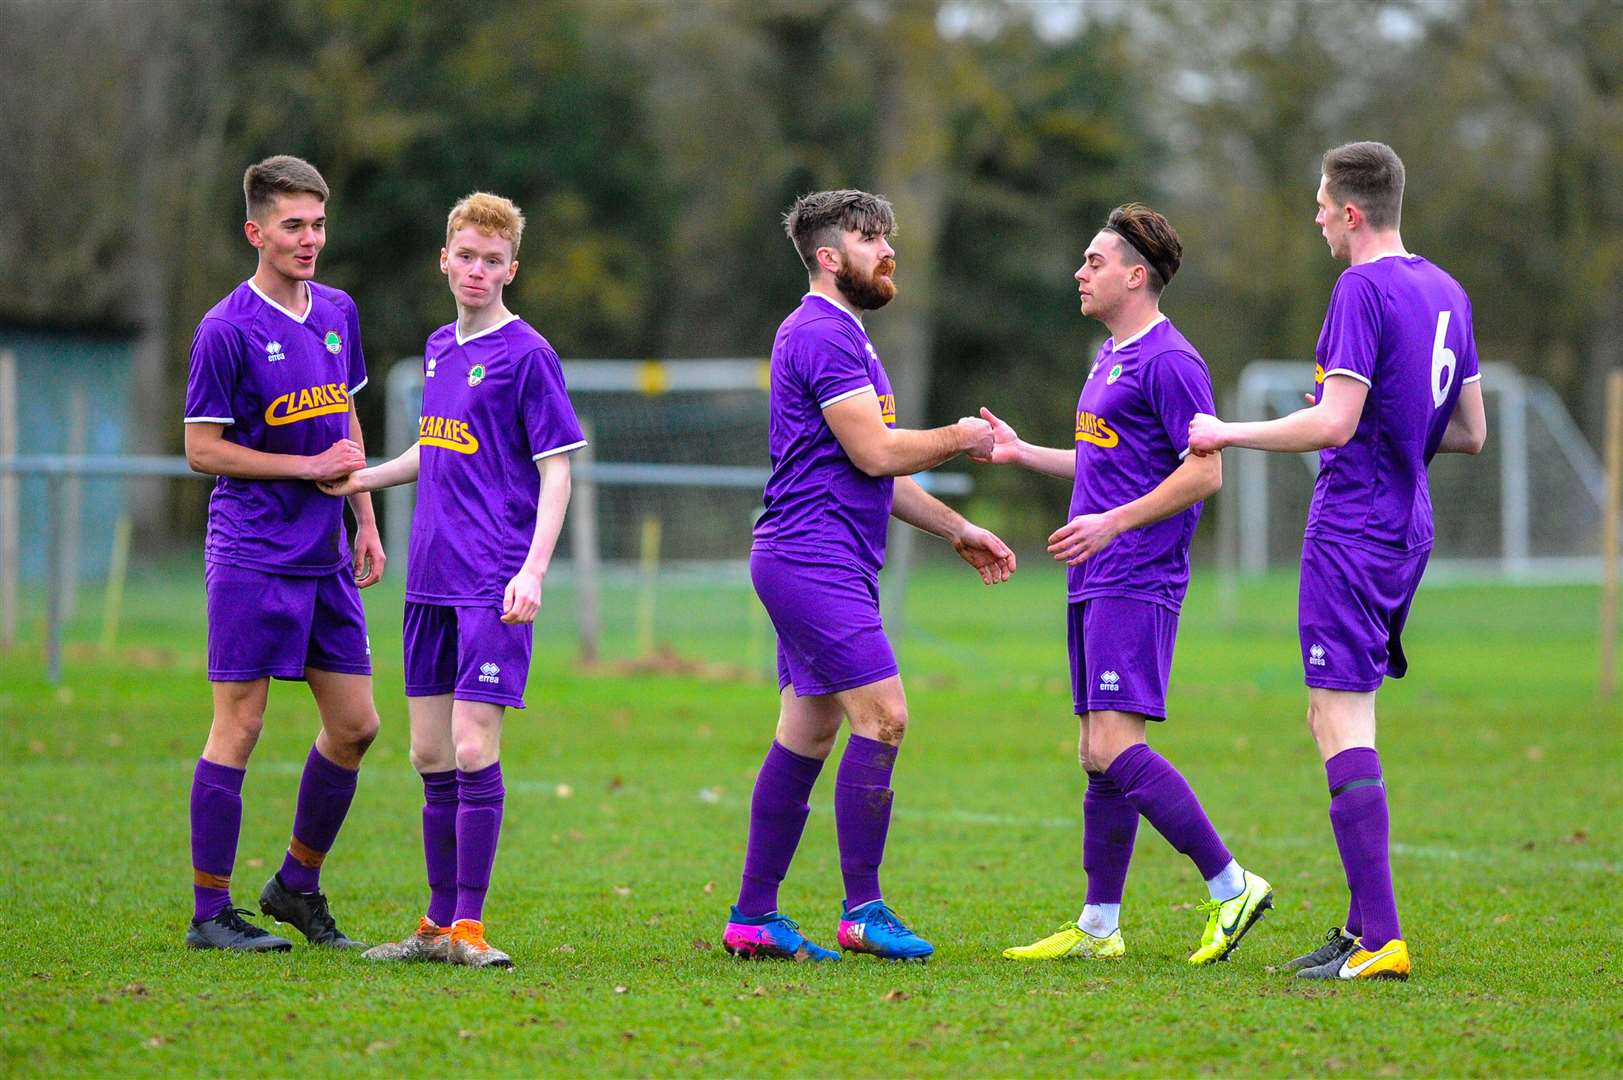 11/01/2020. Walsham le Willows, UK. ..Football action from Walsham-le-Willows v Haverhill Rovers..Walsham celebrate their first goal. ..Photo by Mark Bullimore. (26481150)